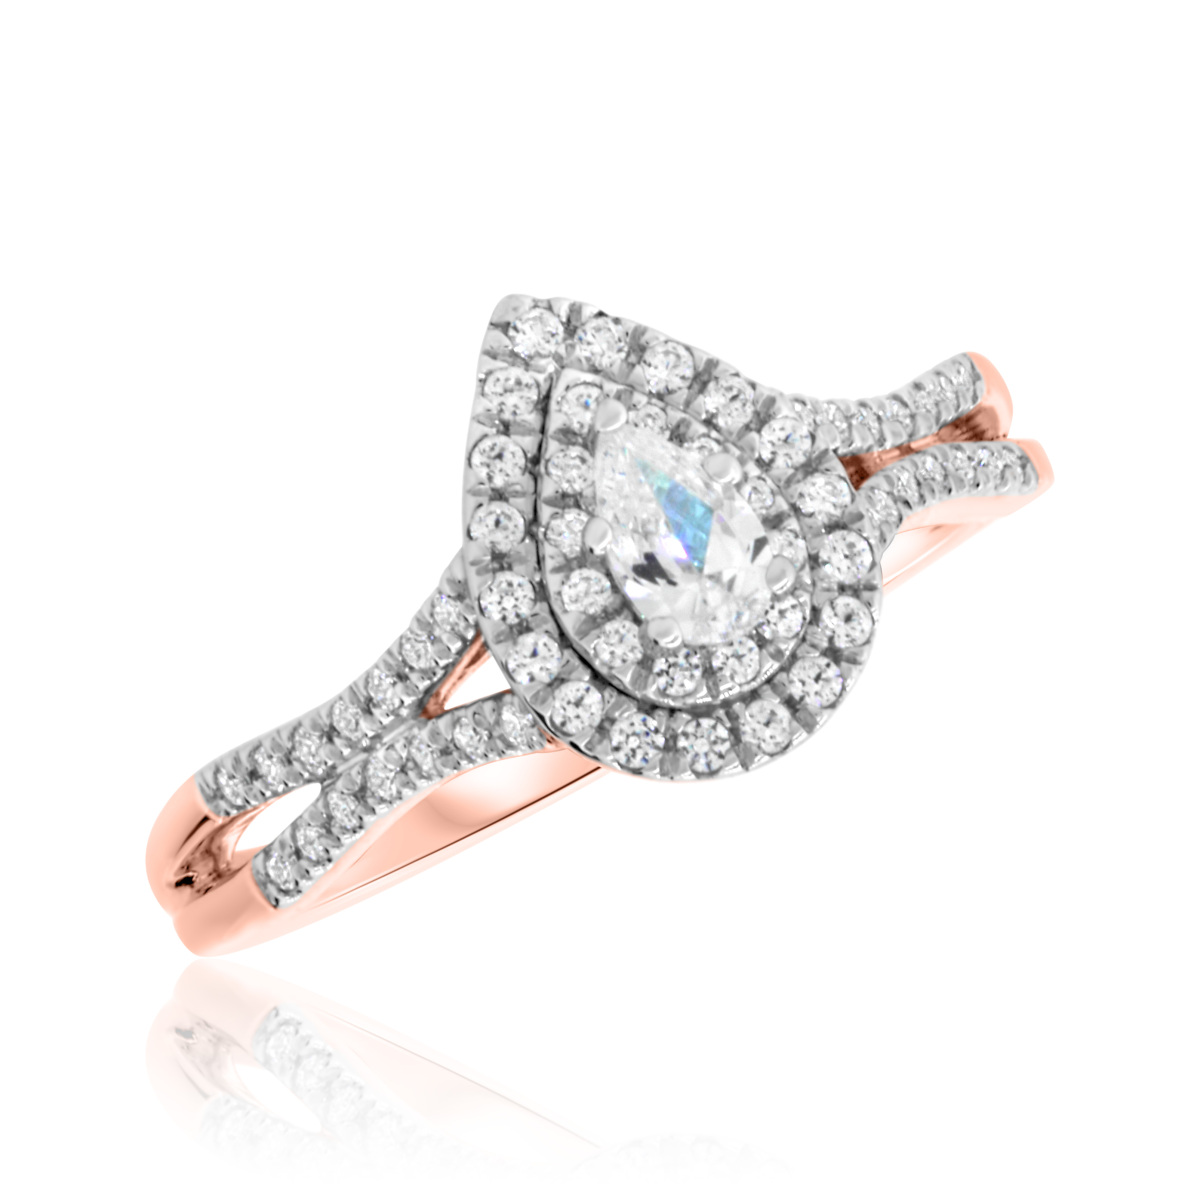 1/2 CT. T.W. Diamond Engagement Ring 10K Rose Gold